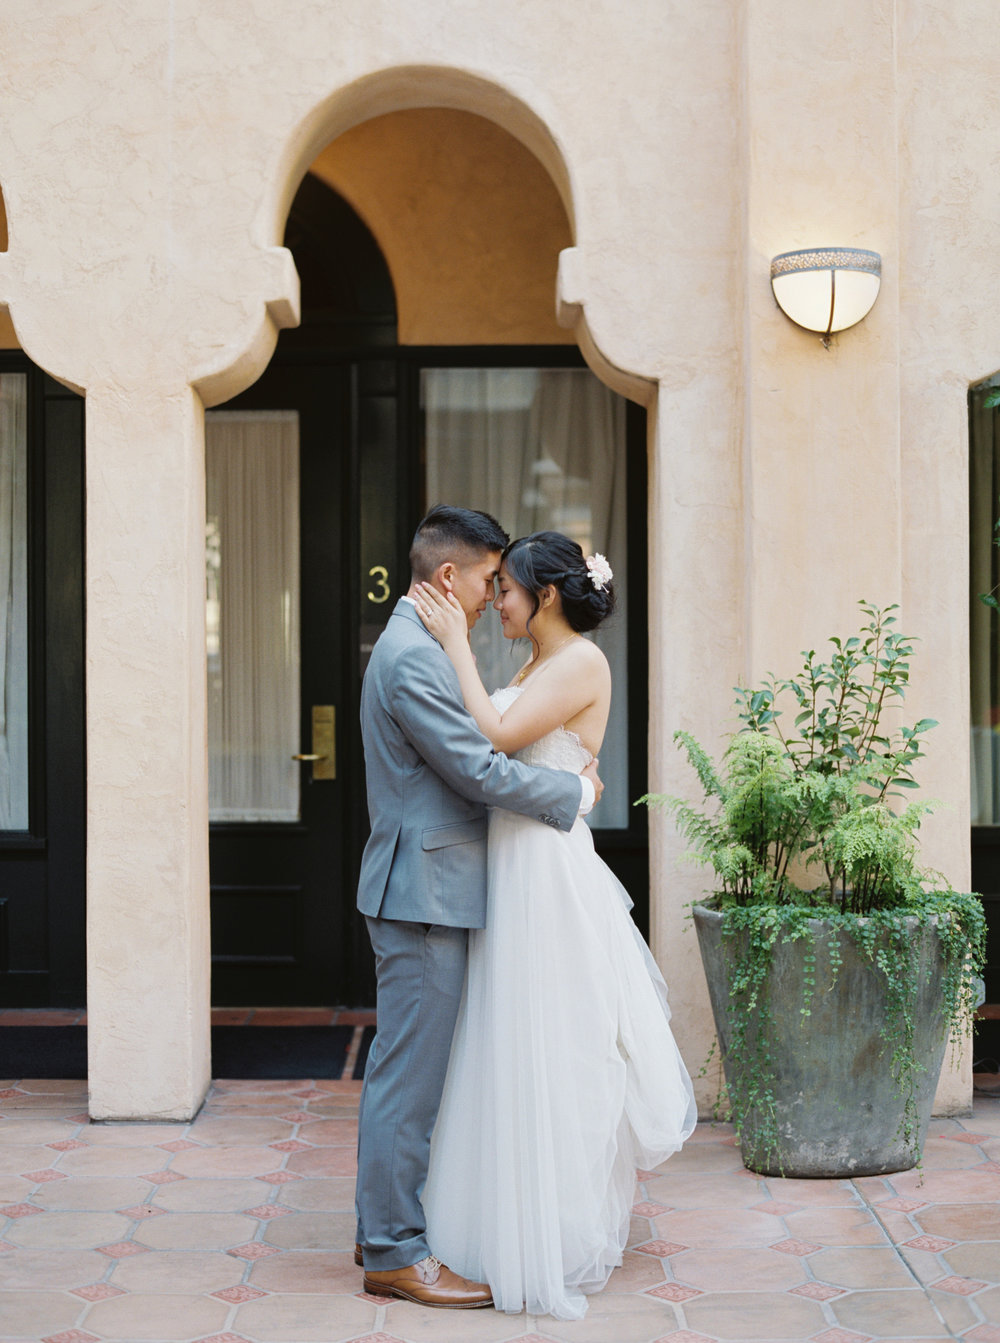 trynhphoto_wedding_photography_Standford_PaloAlto_SF_BayArea_Destination_OC_HA-379.jpg